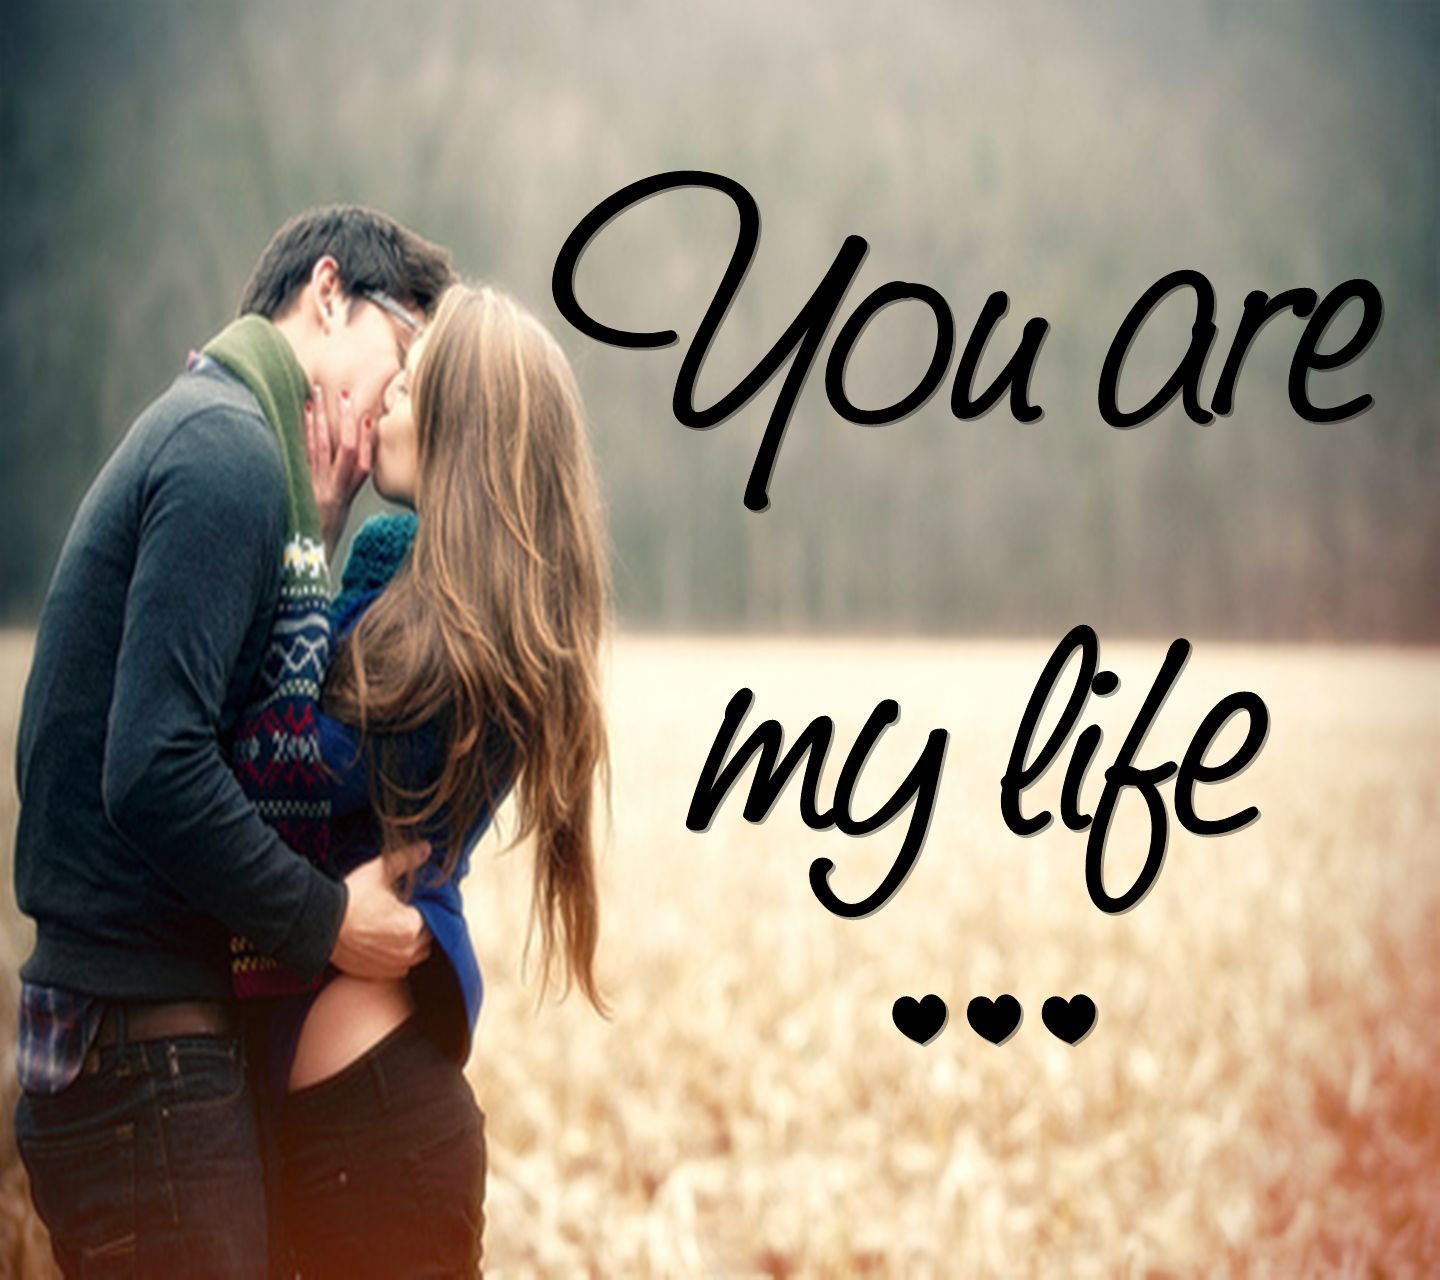 Awesome Couple Lip Kiss Images With Quotes And Description Love Picture Quotes Kissing Quotes Quotes For Him